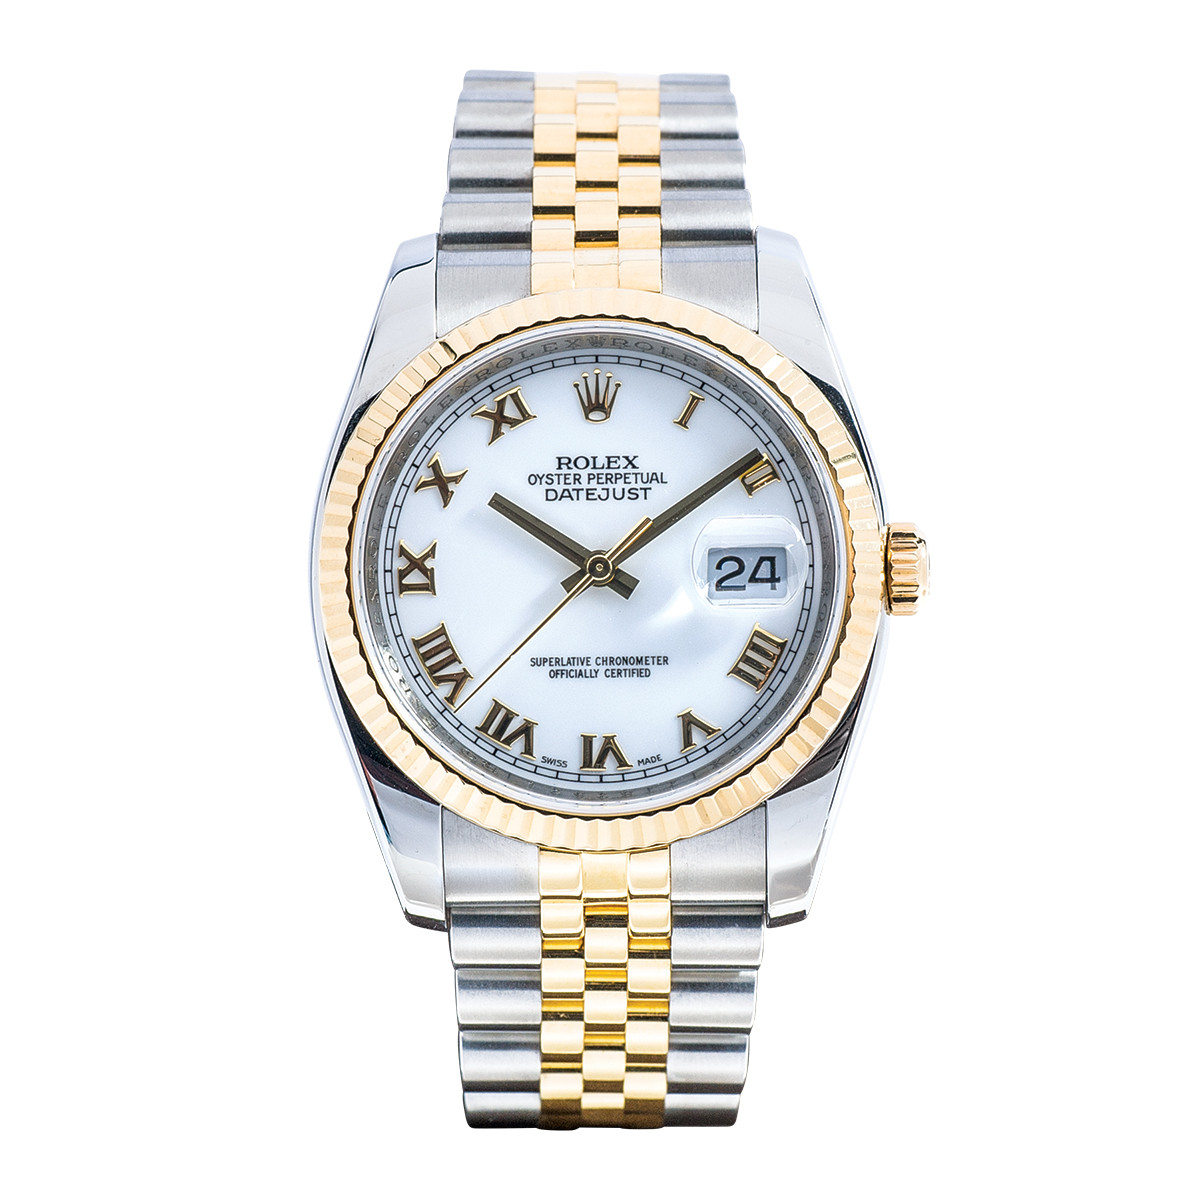 Preowned 18k Gold Rolex GTS Datejust